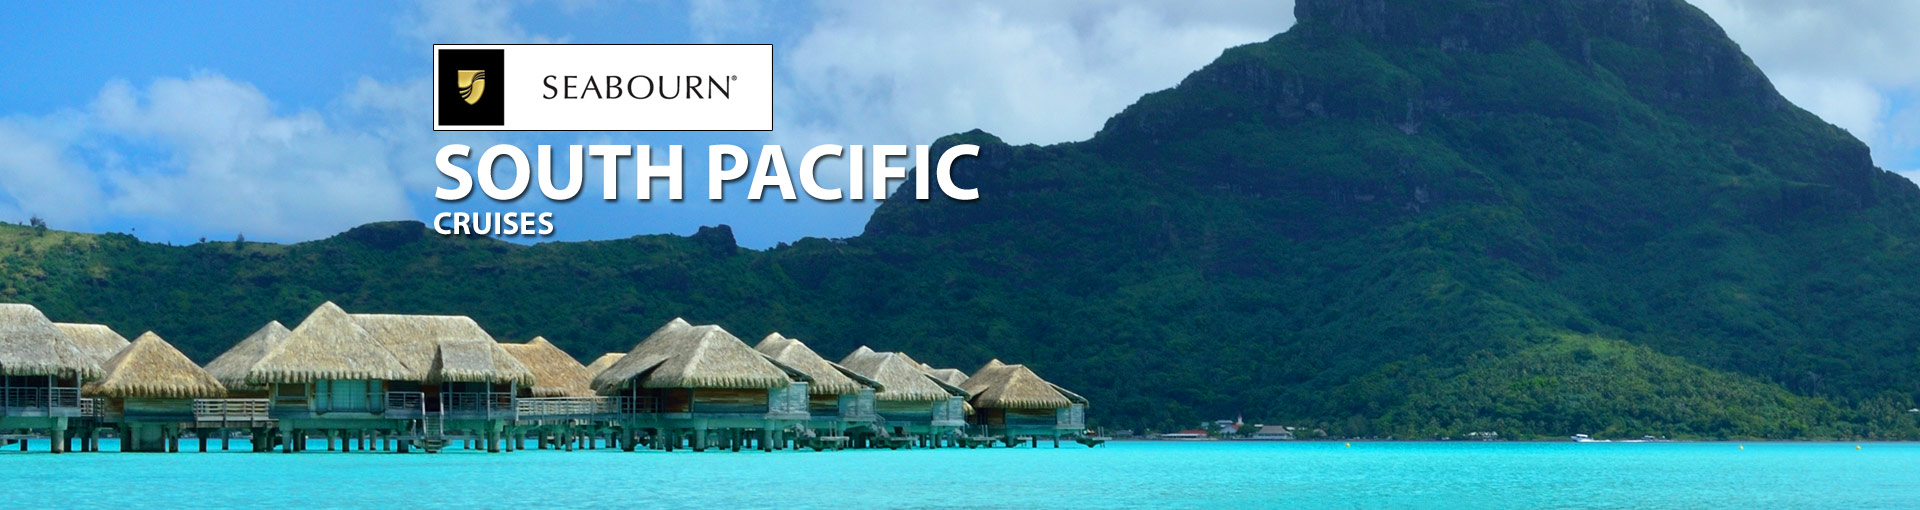 Seabourn Cruise Line South Pacific Tahiti Cruise